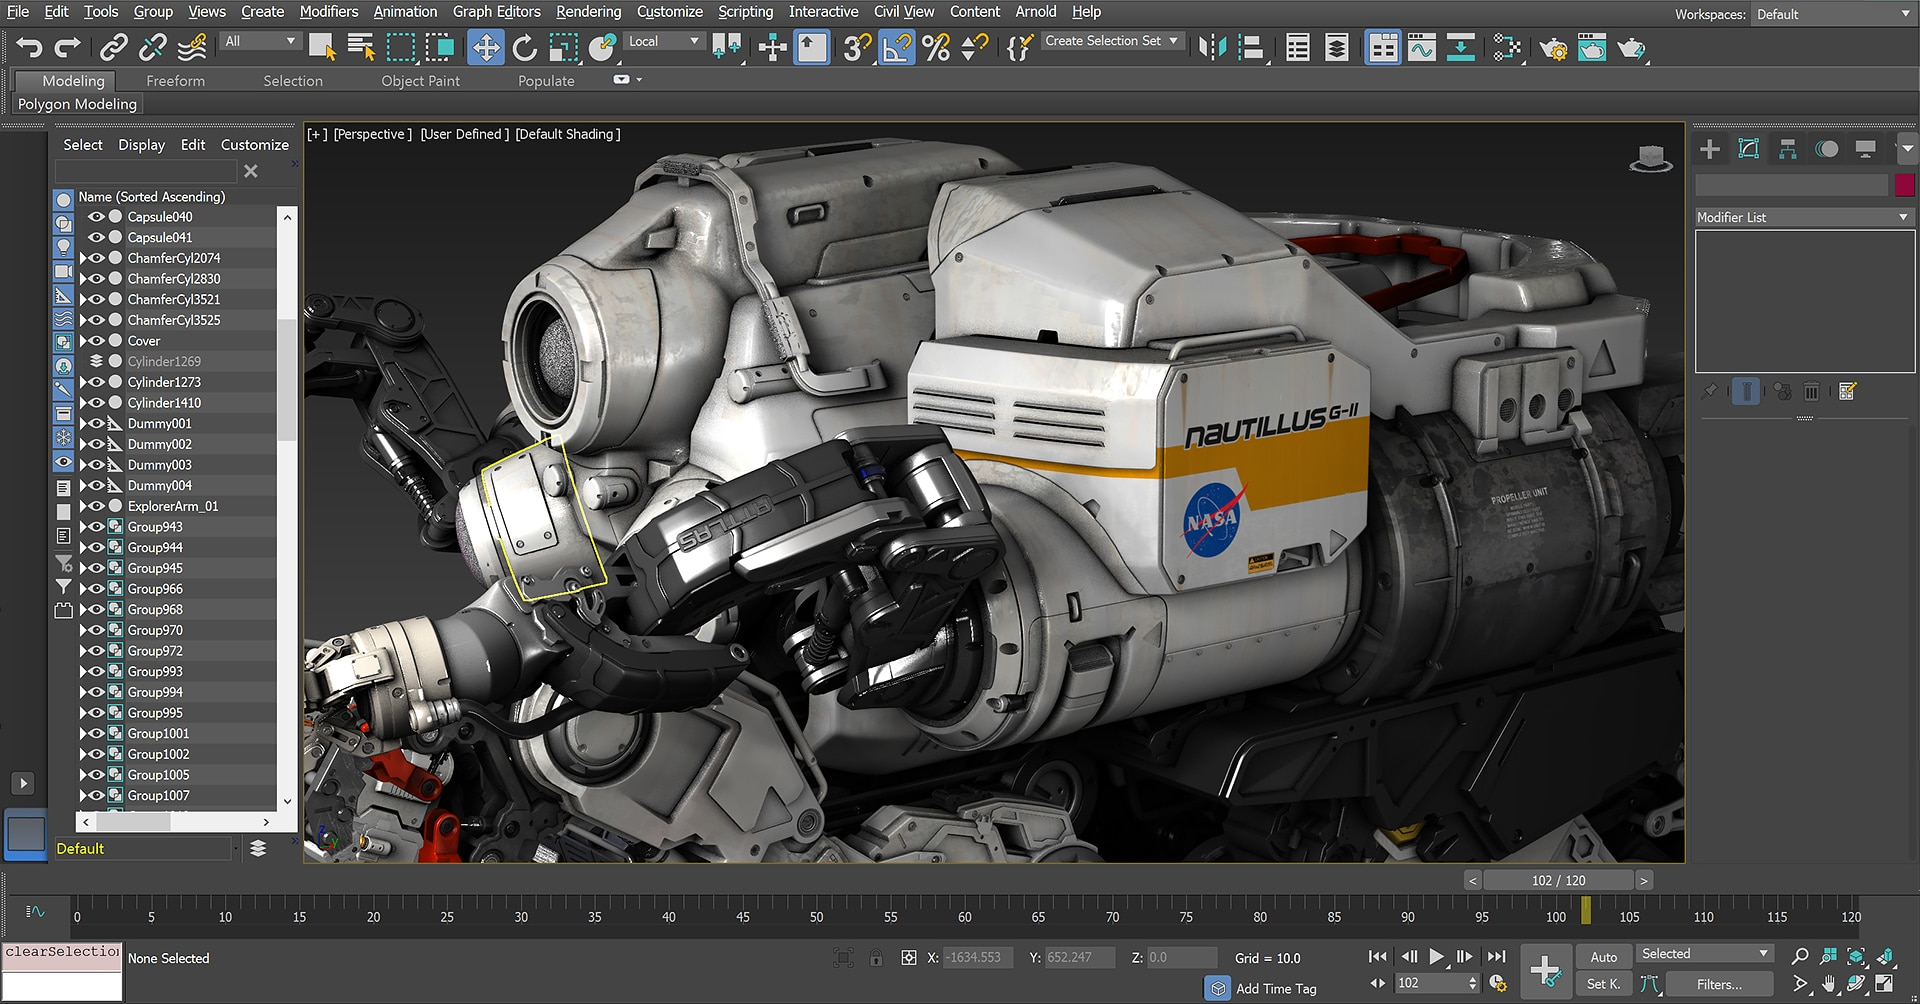 New Features In 3ds Max 2020 | 3D Modeling & Rendering